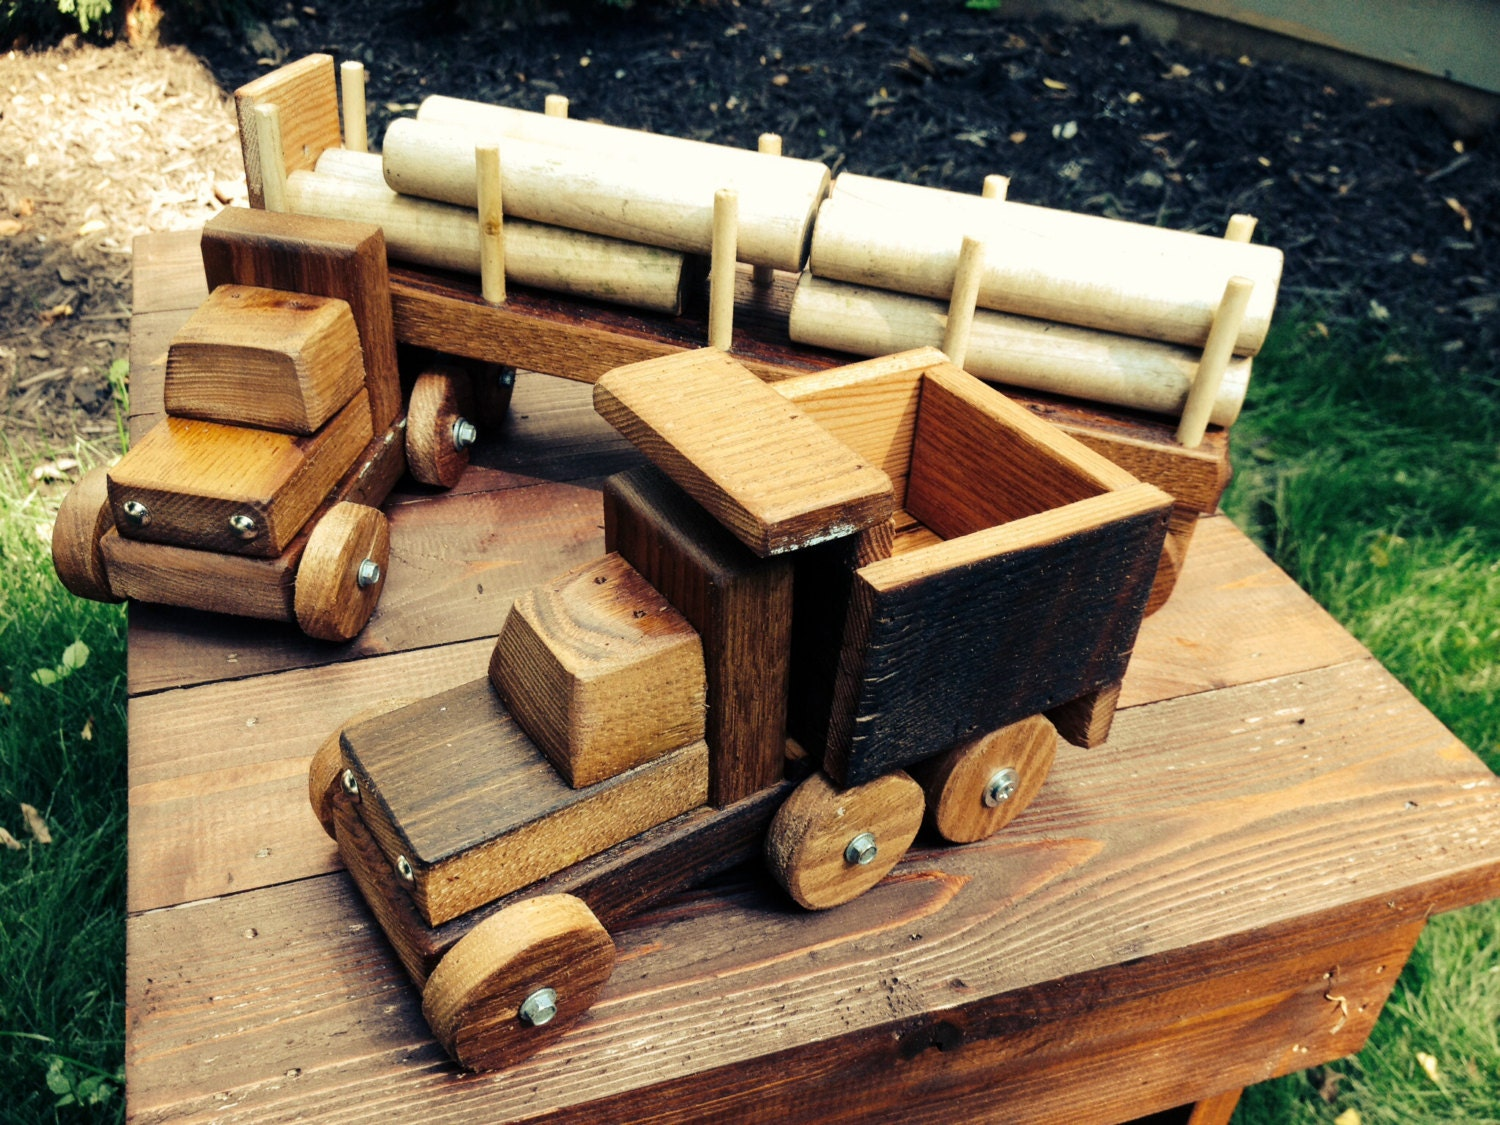 Wooden Toy Trucks For 3 Year Old : Reclaimed wood toy trucks made from year old ash by pear